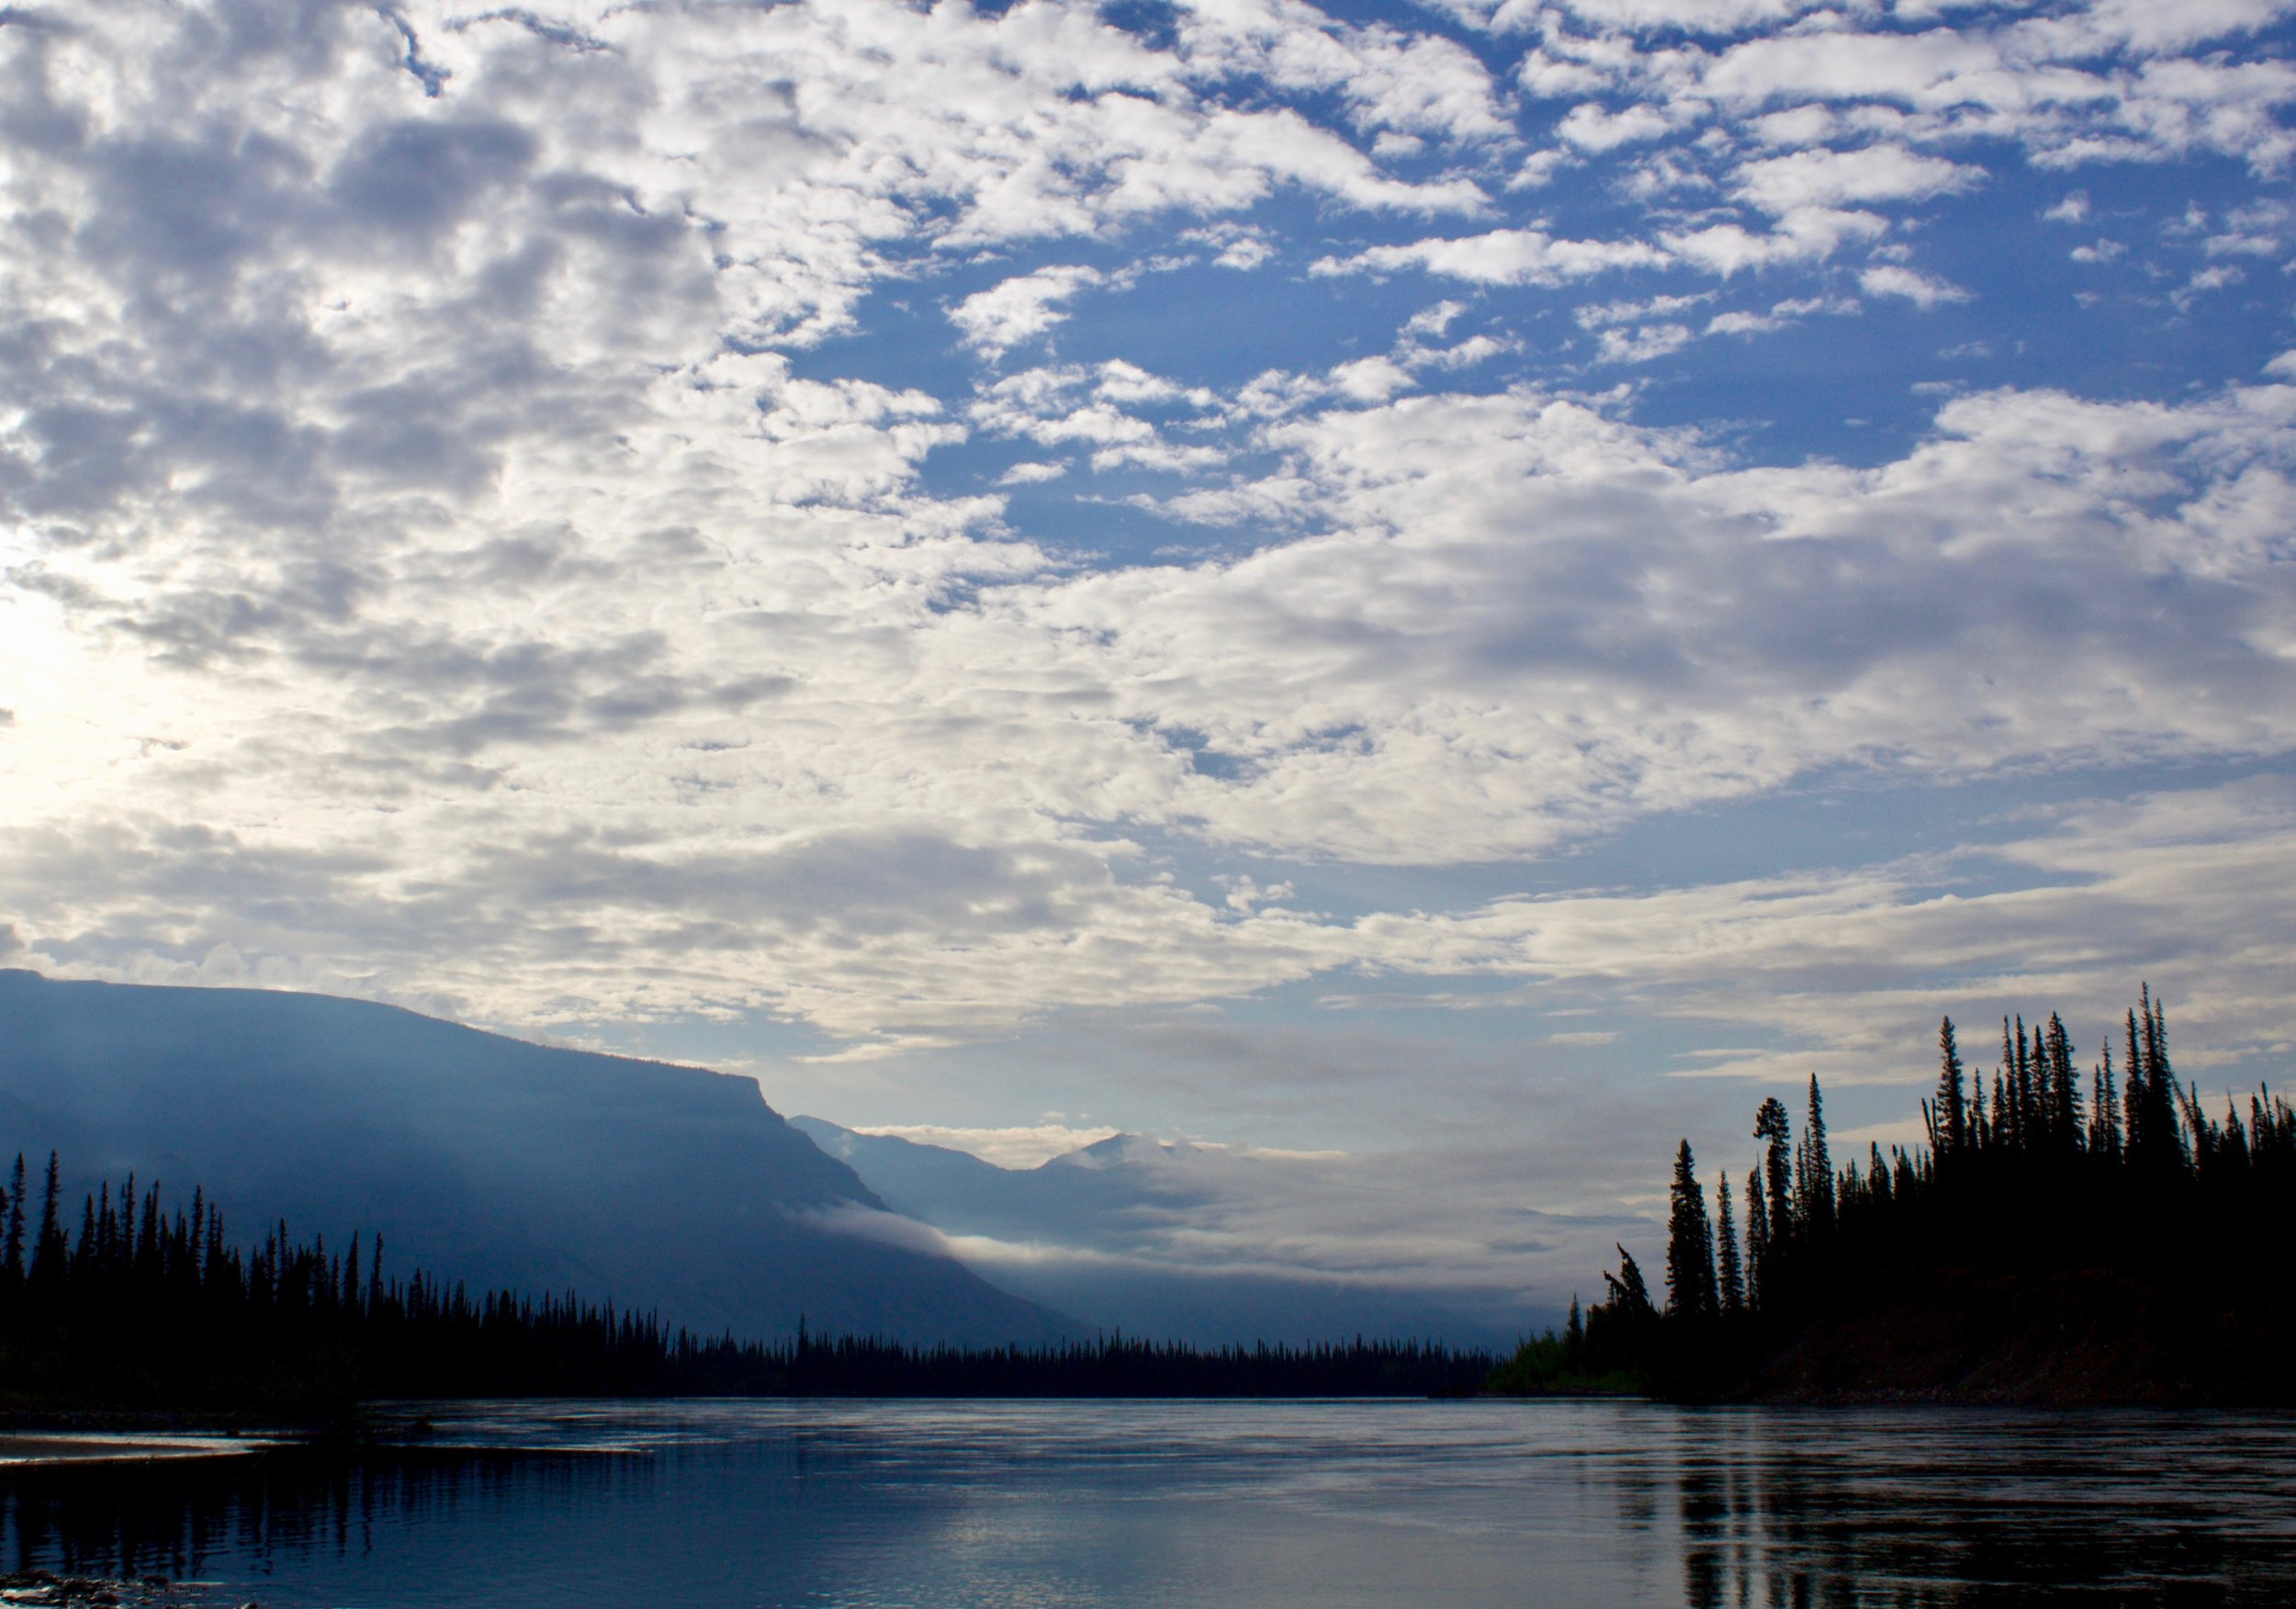 A quiet morning on the Nahanni River.